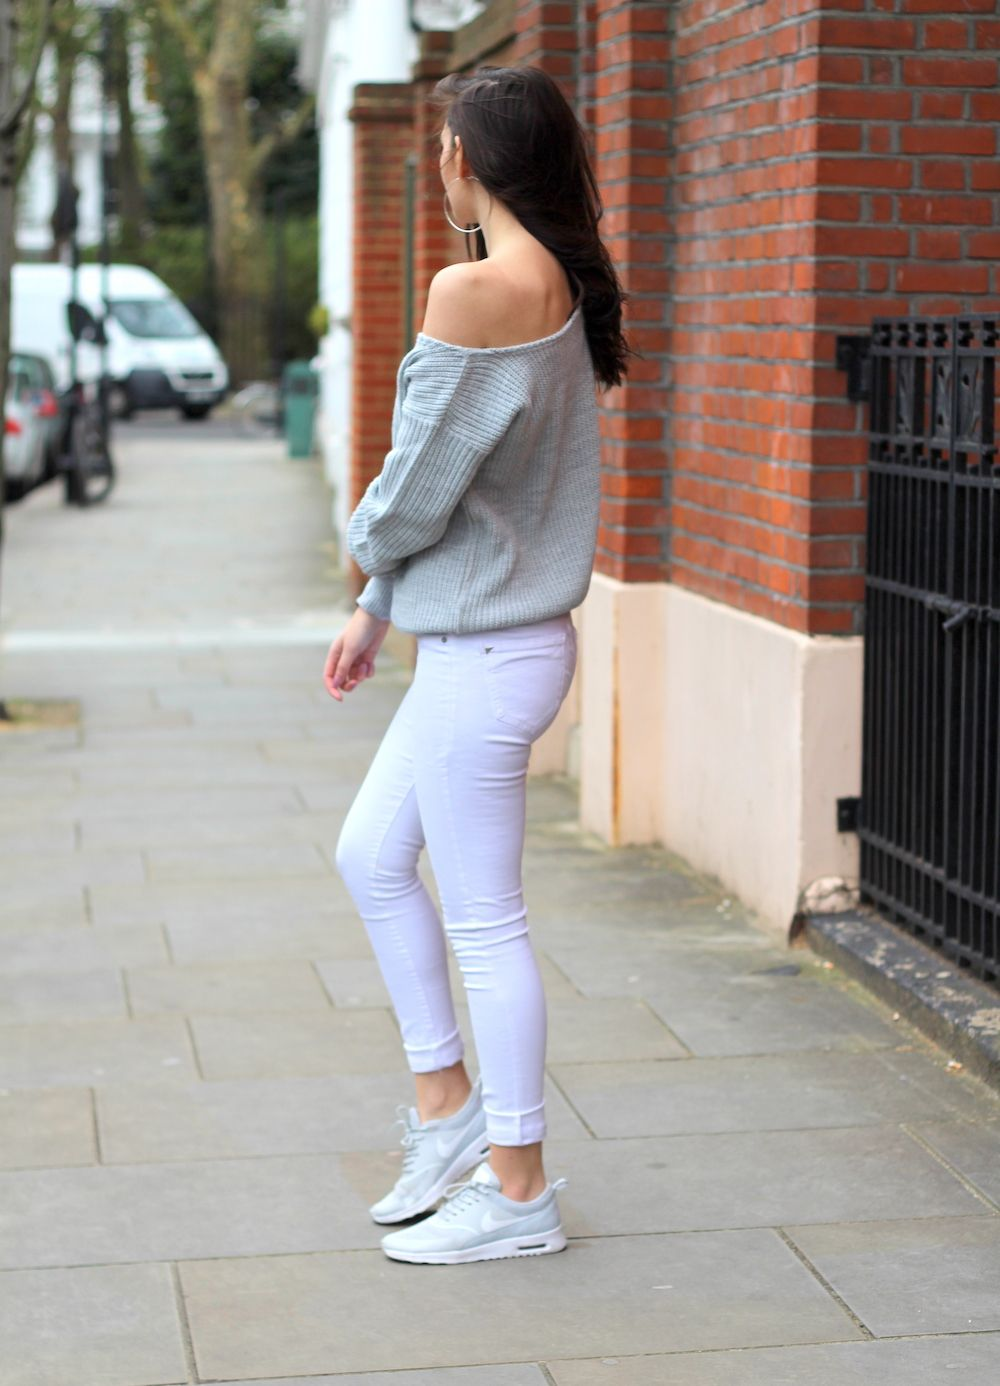 air max thea asos casual cold shoulder fashion grey missguided nike river  island spring trainers white jeans